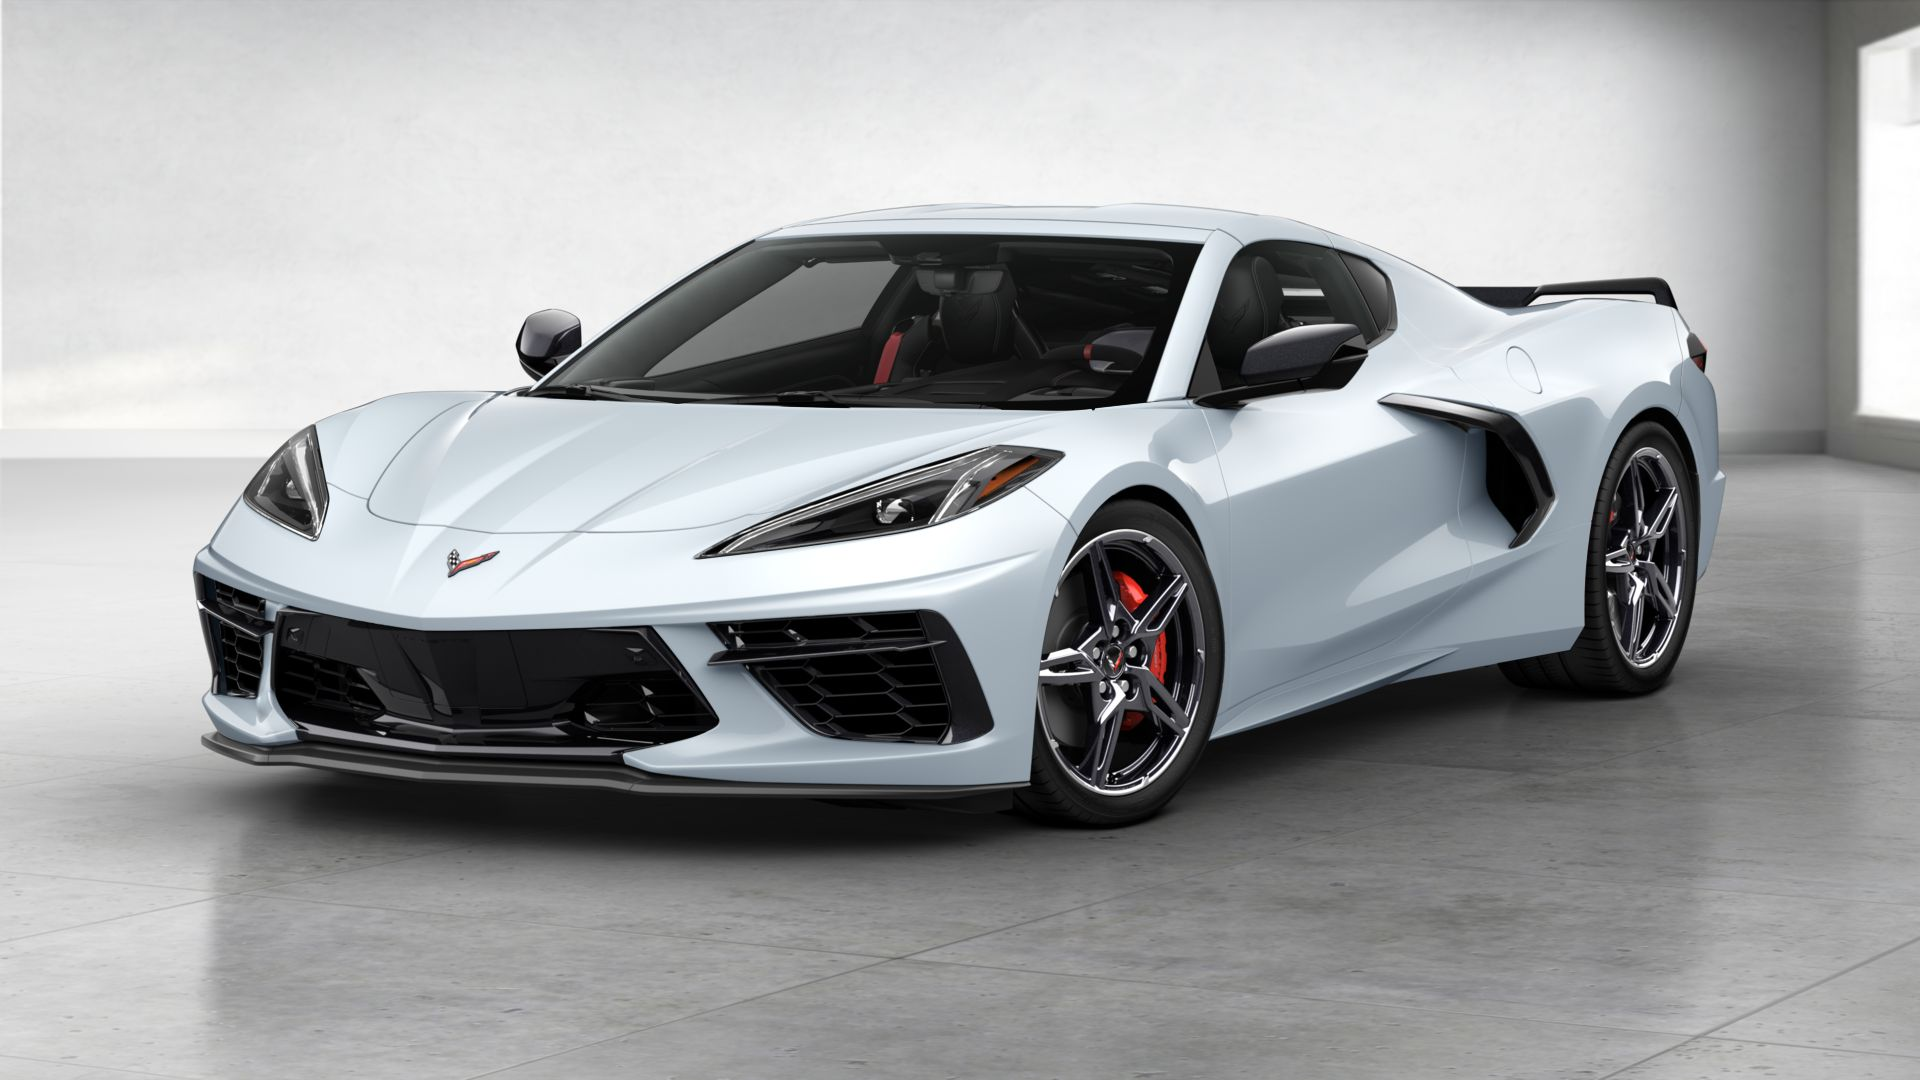 2020 Chevrolet Corvette Stingray 3LT